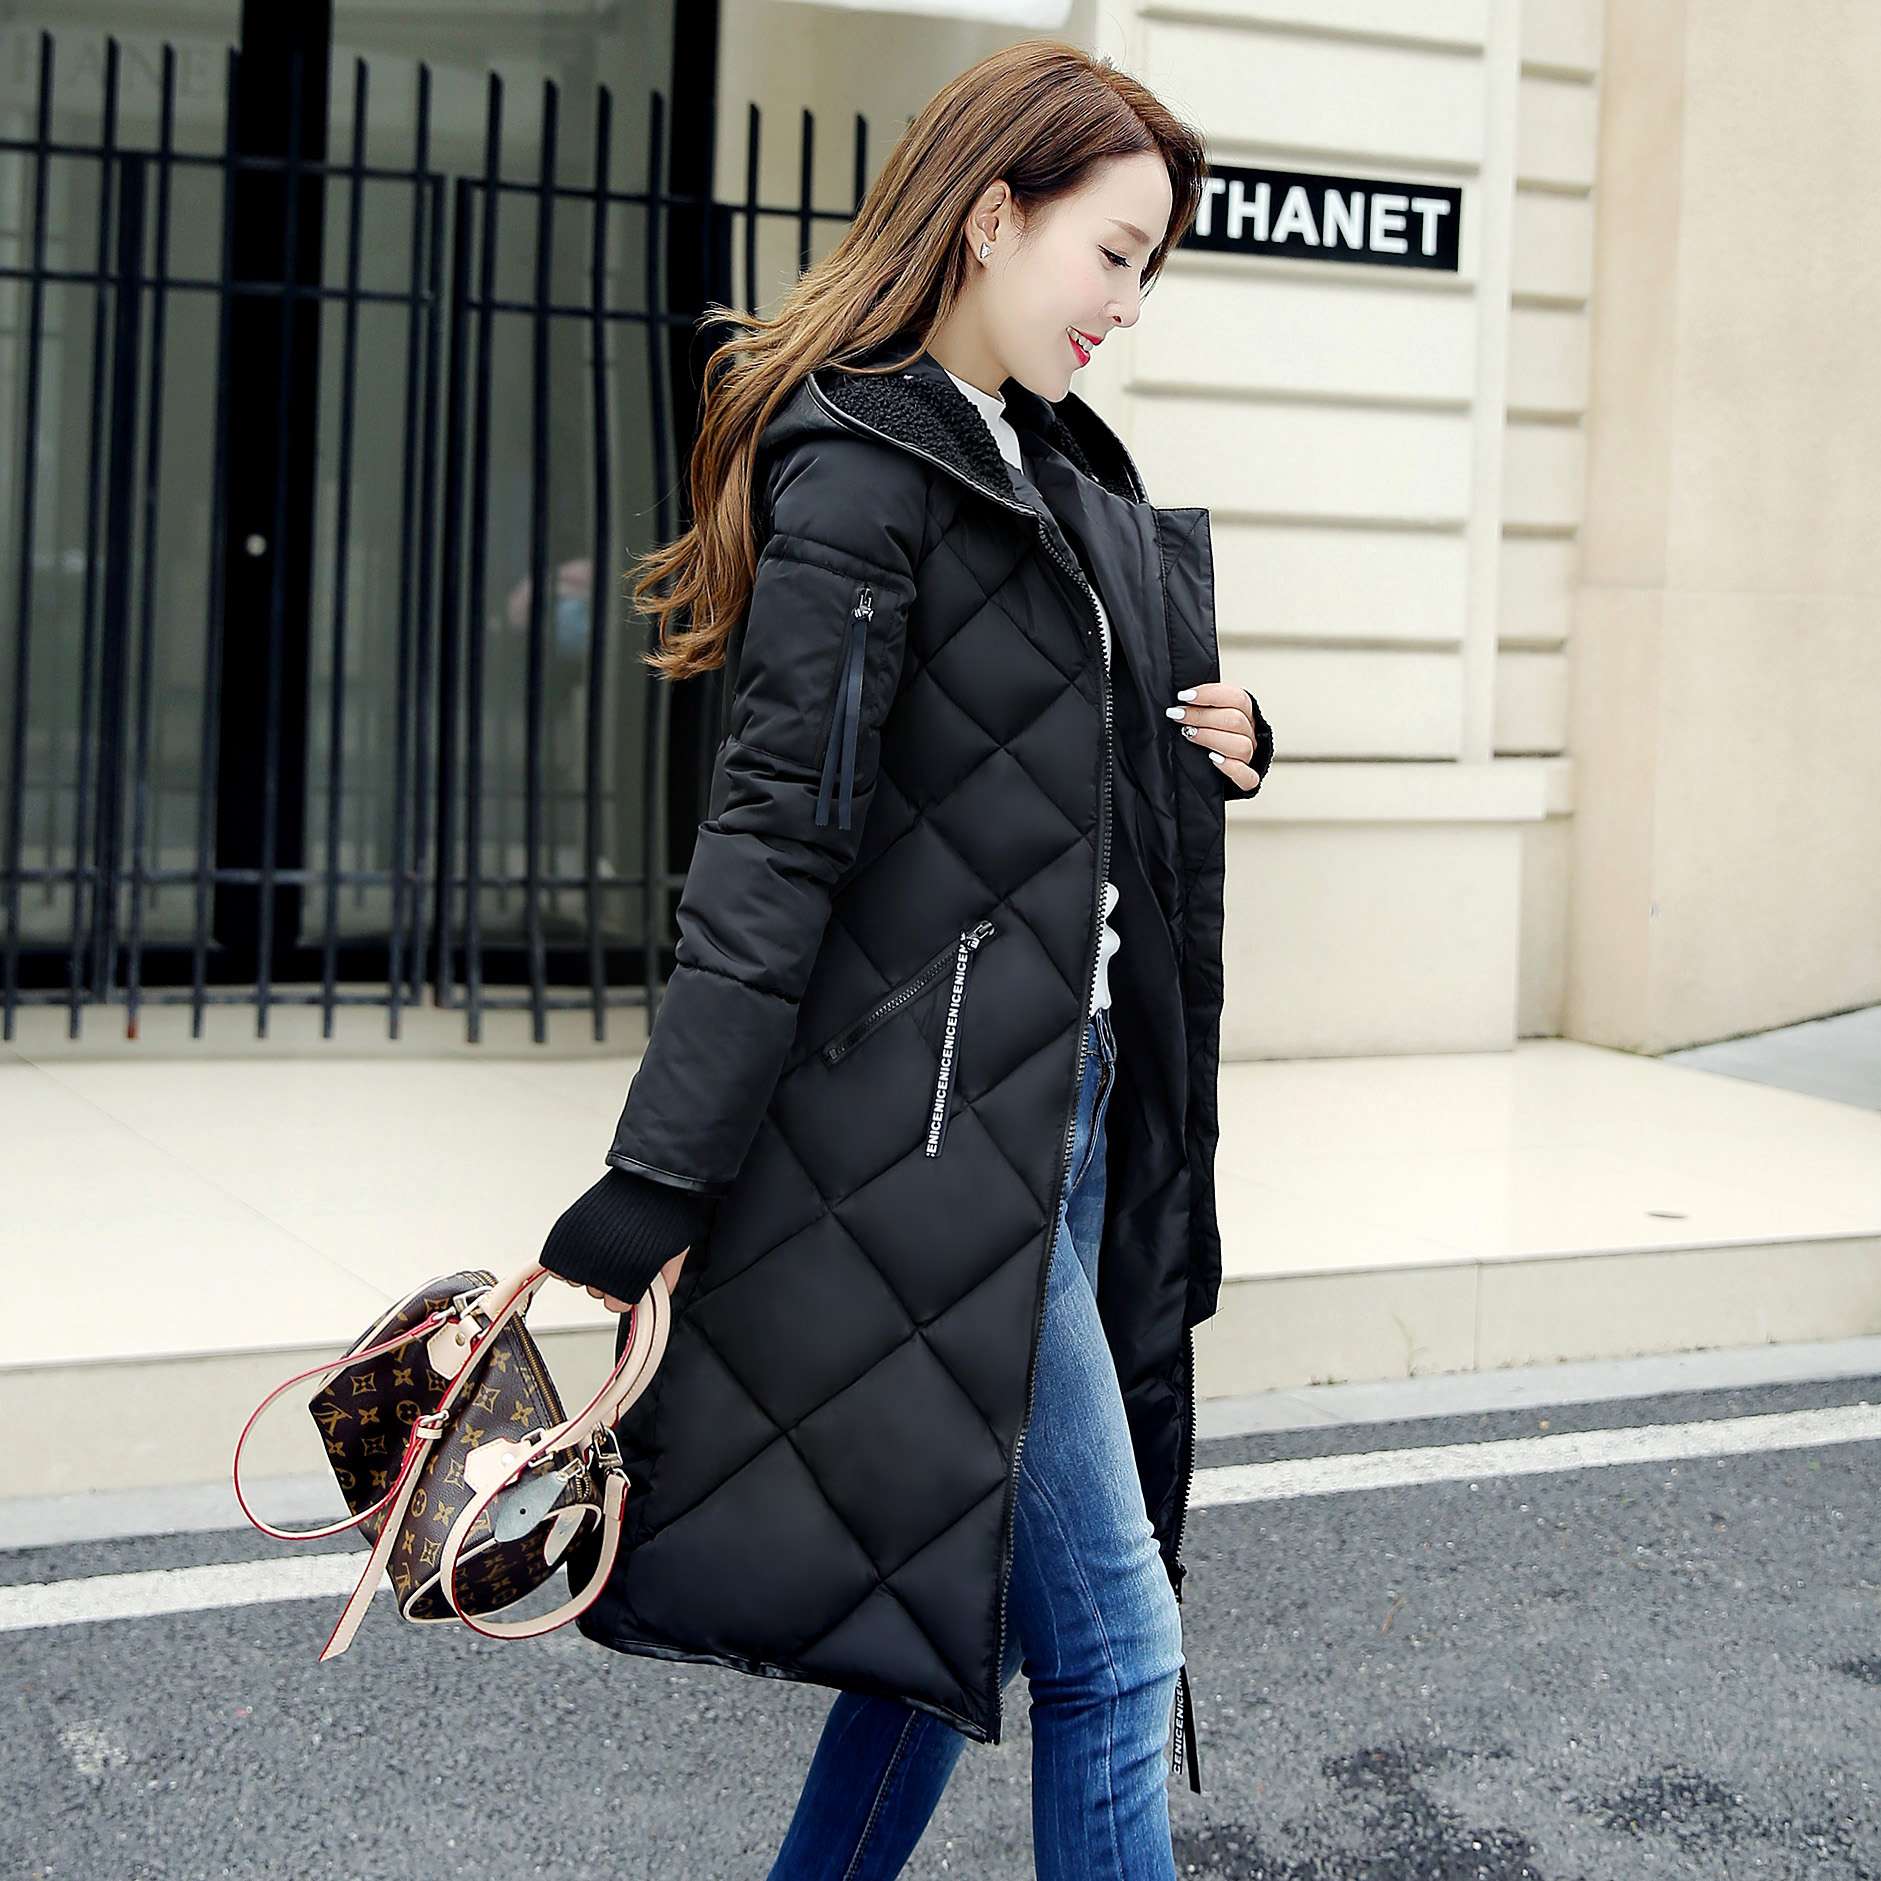 2016 Winter parkas women argyle hooded slim medium long jacket female thicken outerwear plus size coat